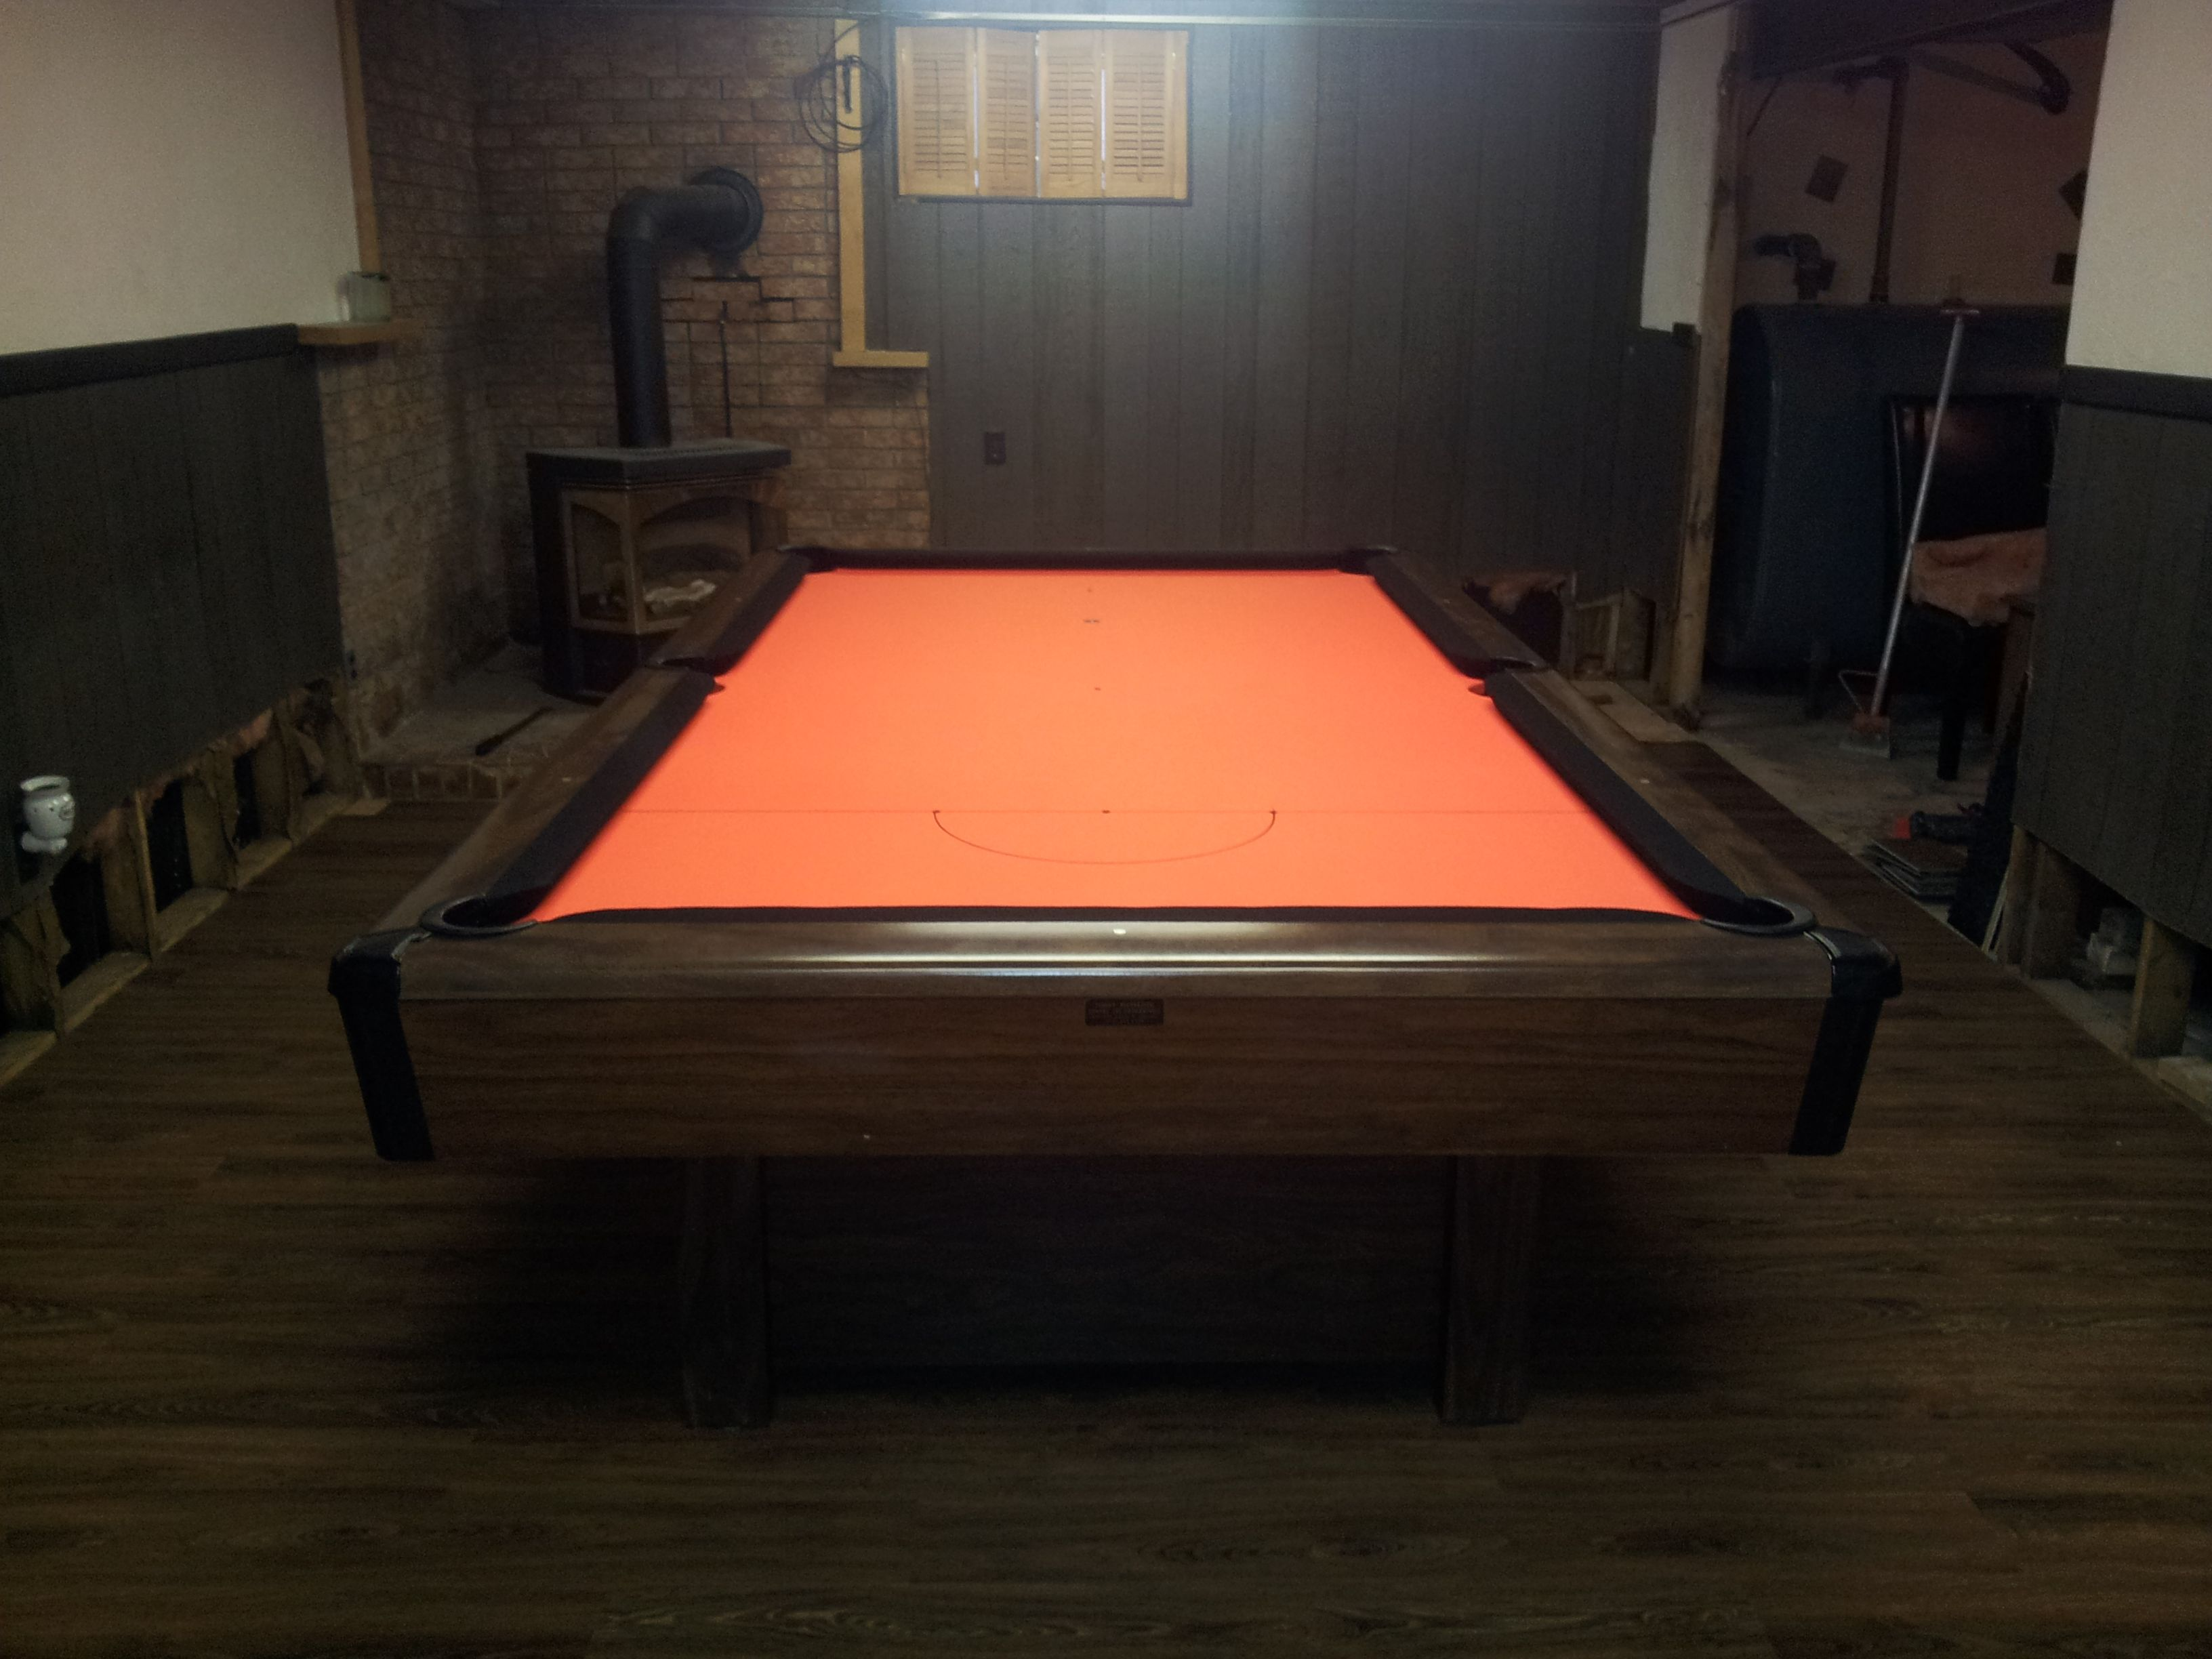 This Old Brunswick Bristol Pool Table Was Reclothed With Orange Bed Cloth  And Black Rails To